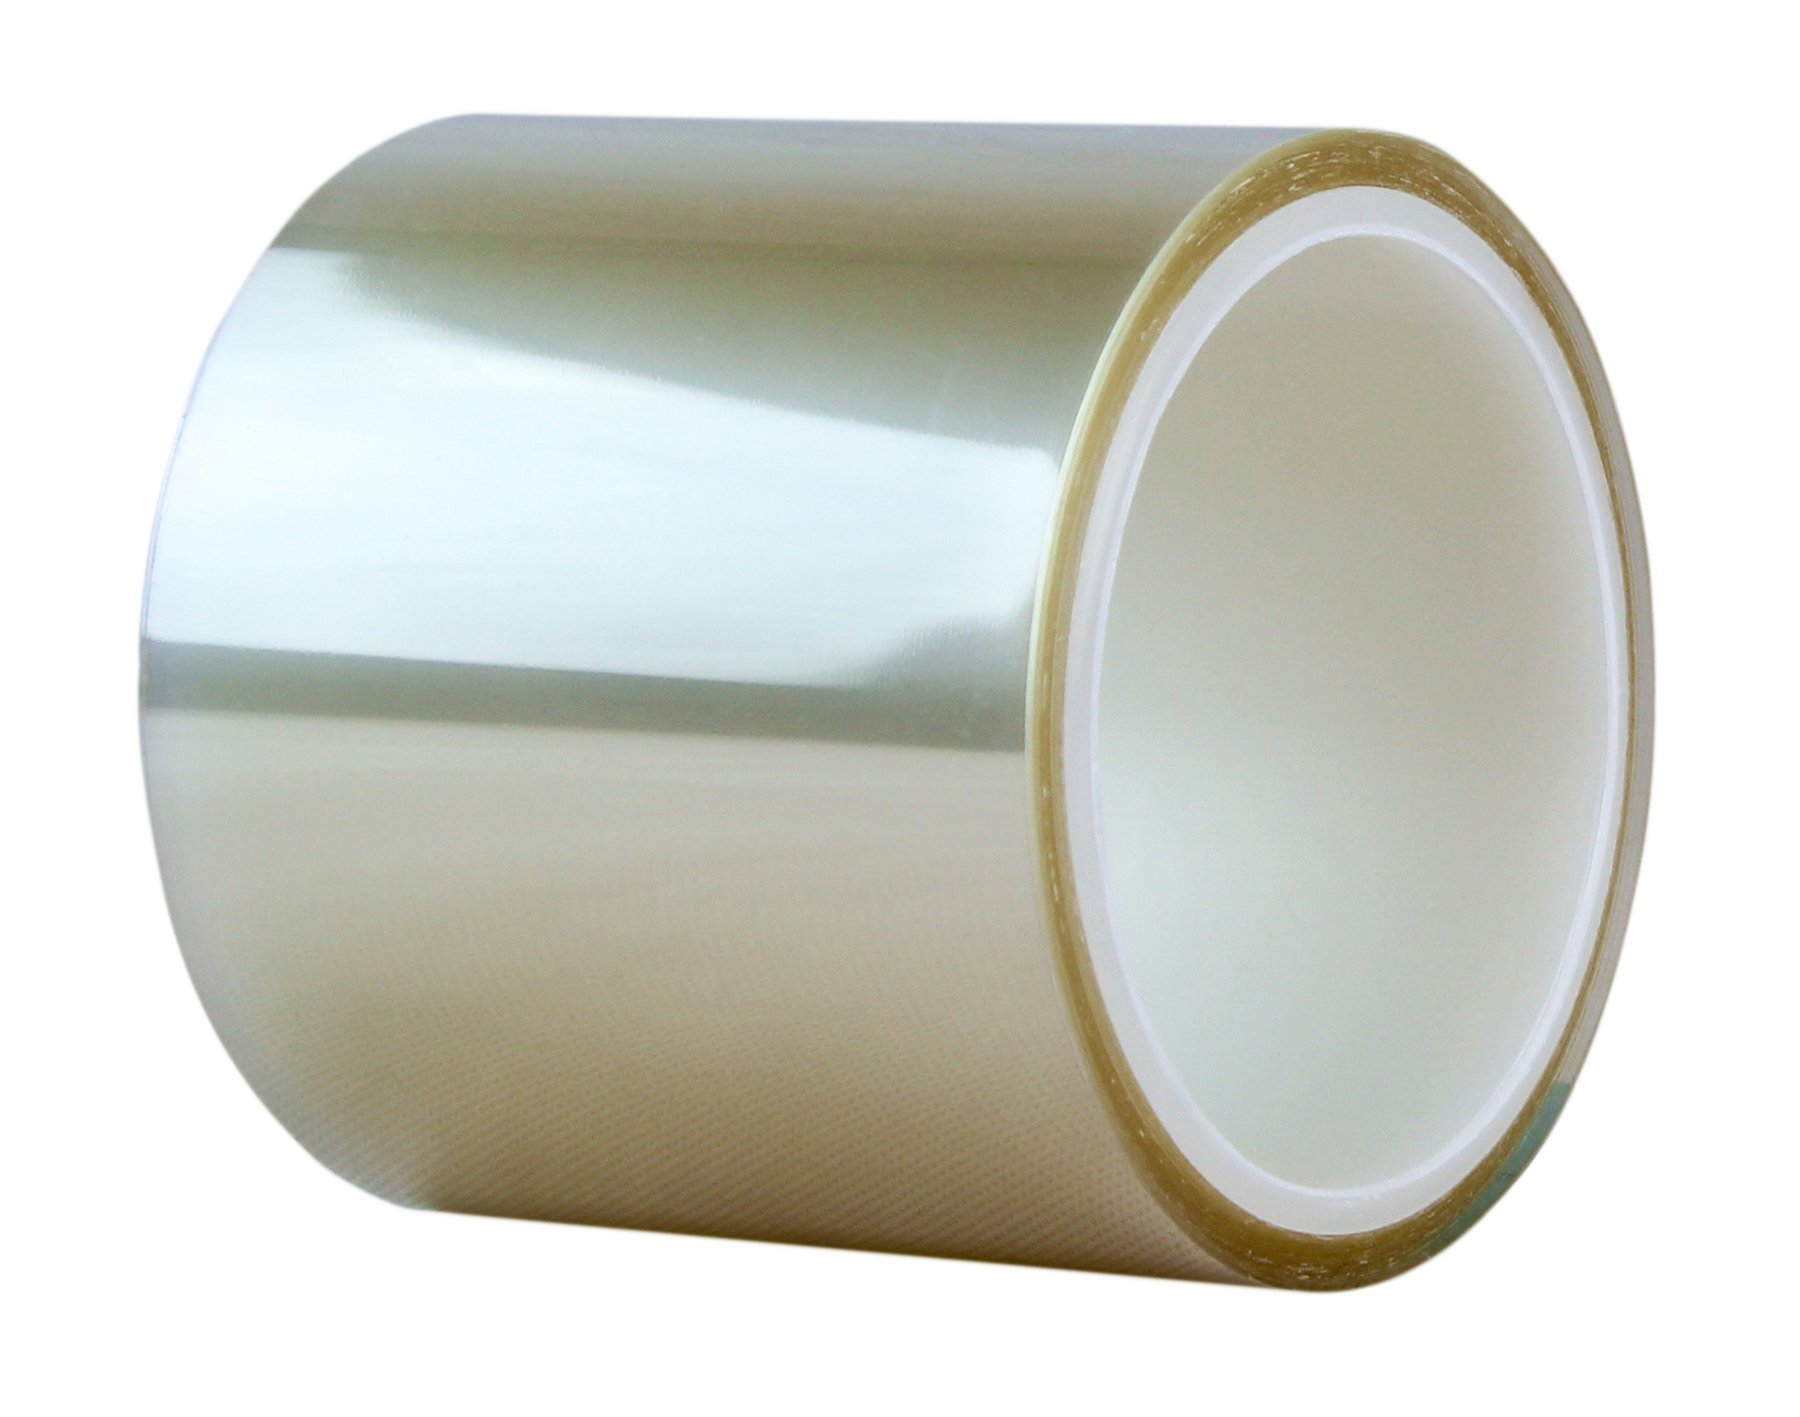 "TIERRAFILM Cake Collar, Chocolate and Cake Decorating Acetate Sheet CLEAR ACETATE ROLL - 3"" x 32 feet 125 micron"